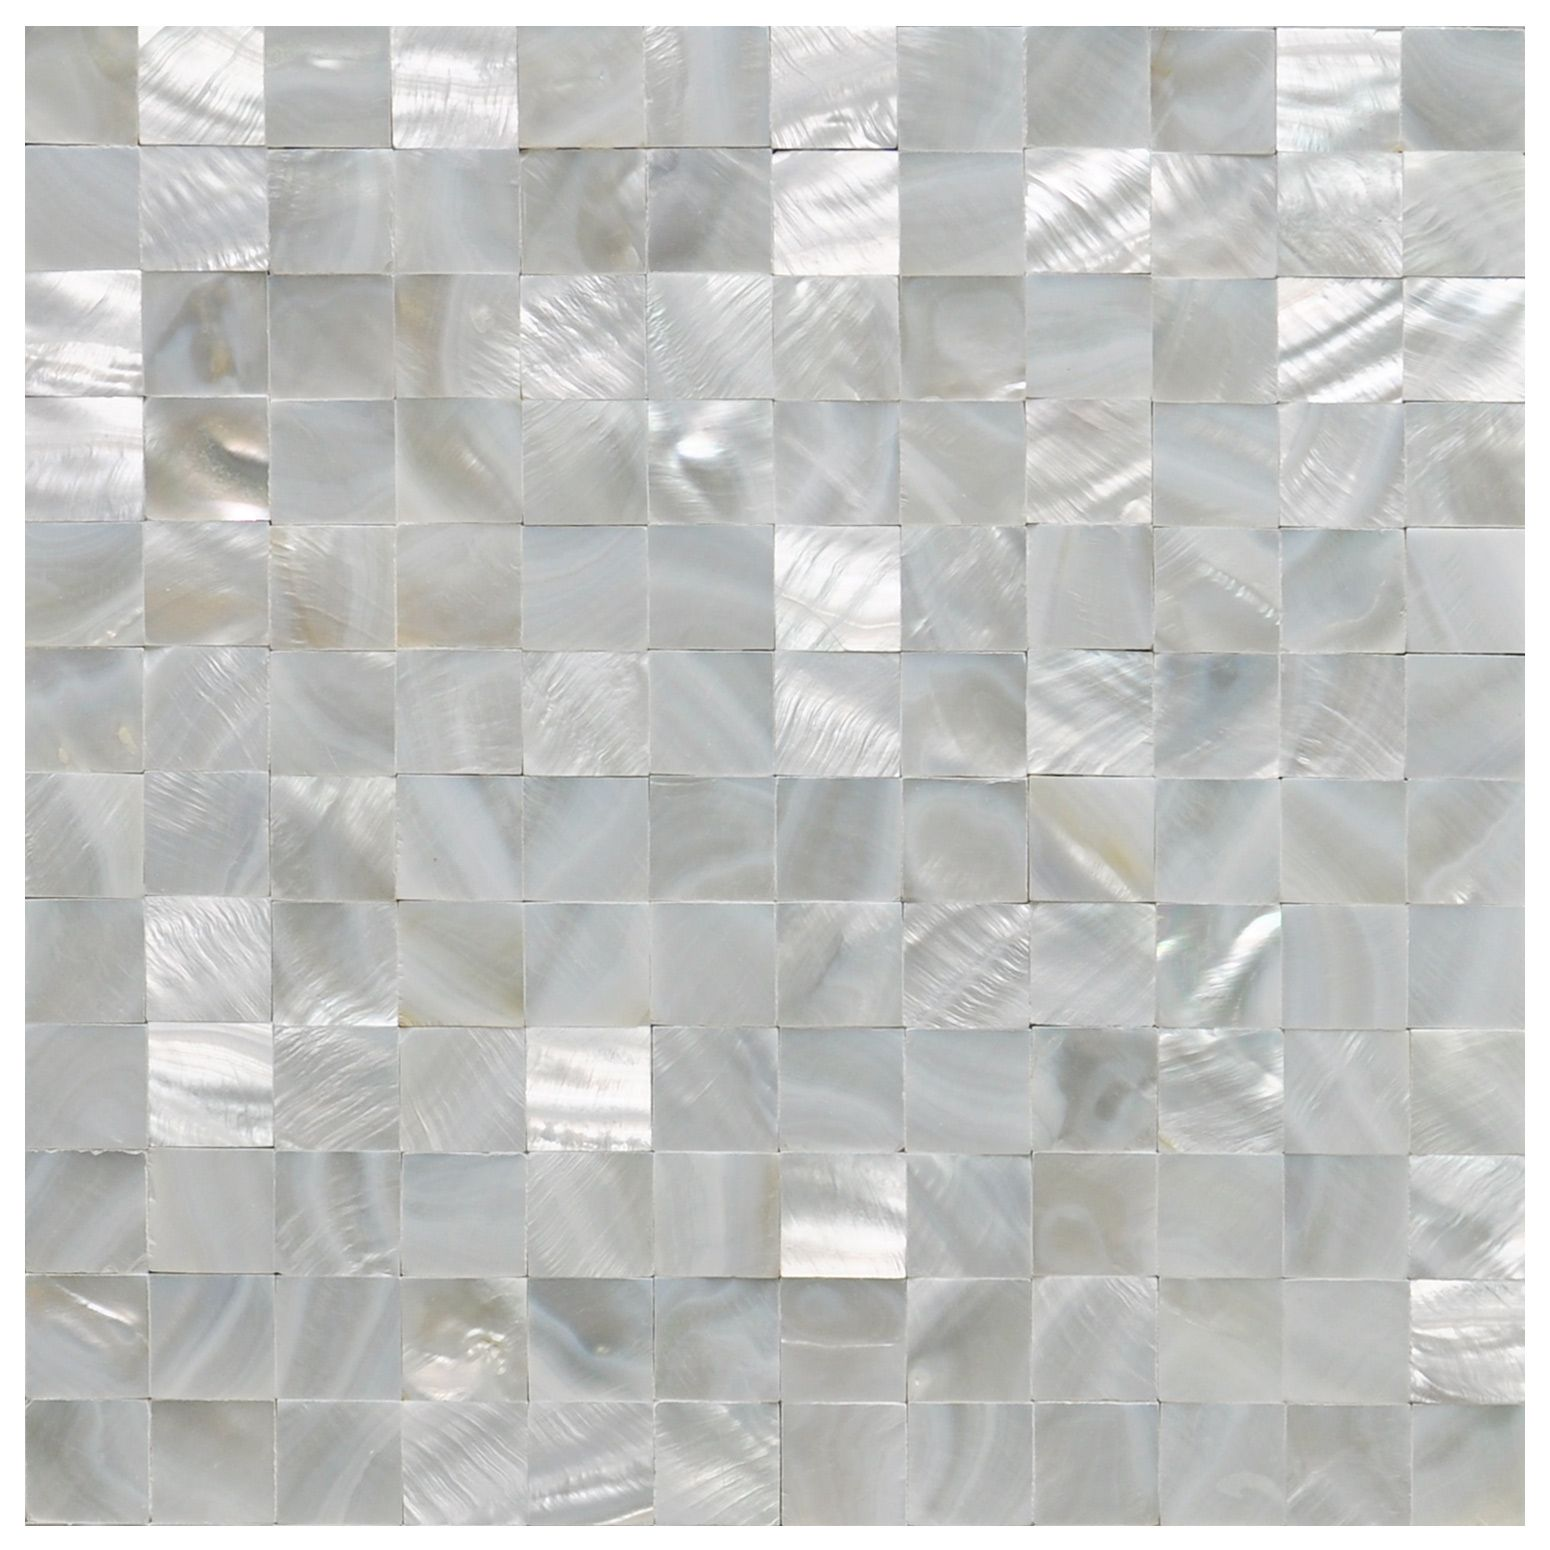 Mother Of Pearl Shell White Square Seamless Mosaic Tile 12 X12 Shell Tiles Handcrafted Wall Art Tile Mesh